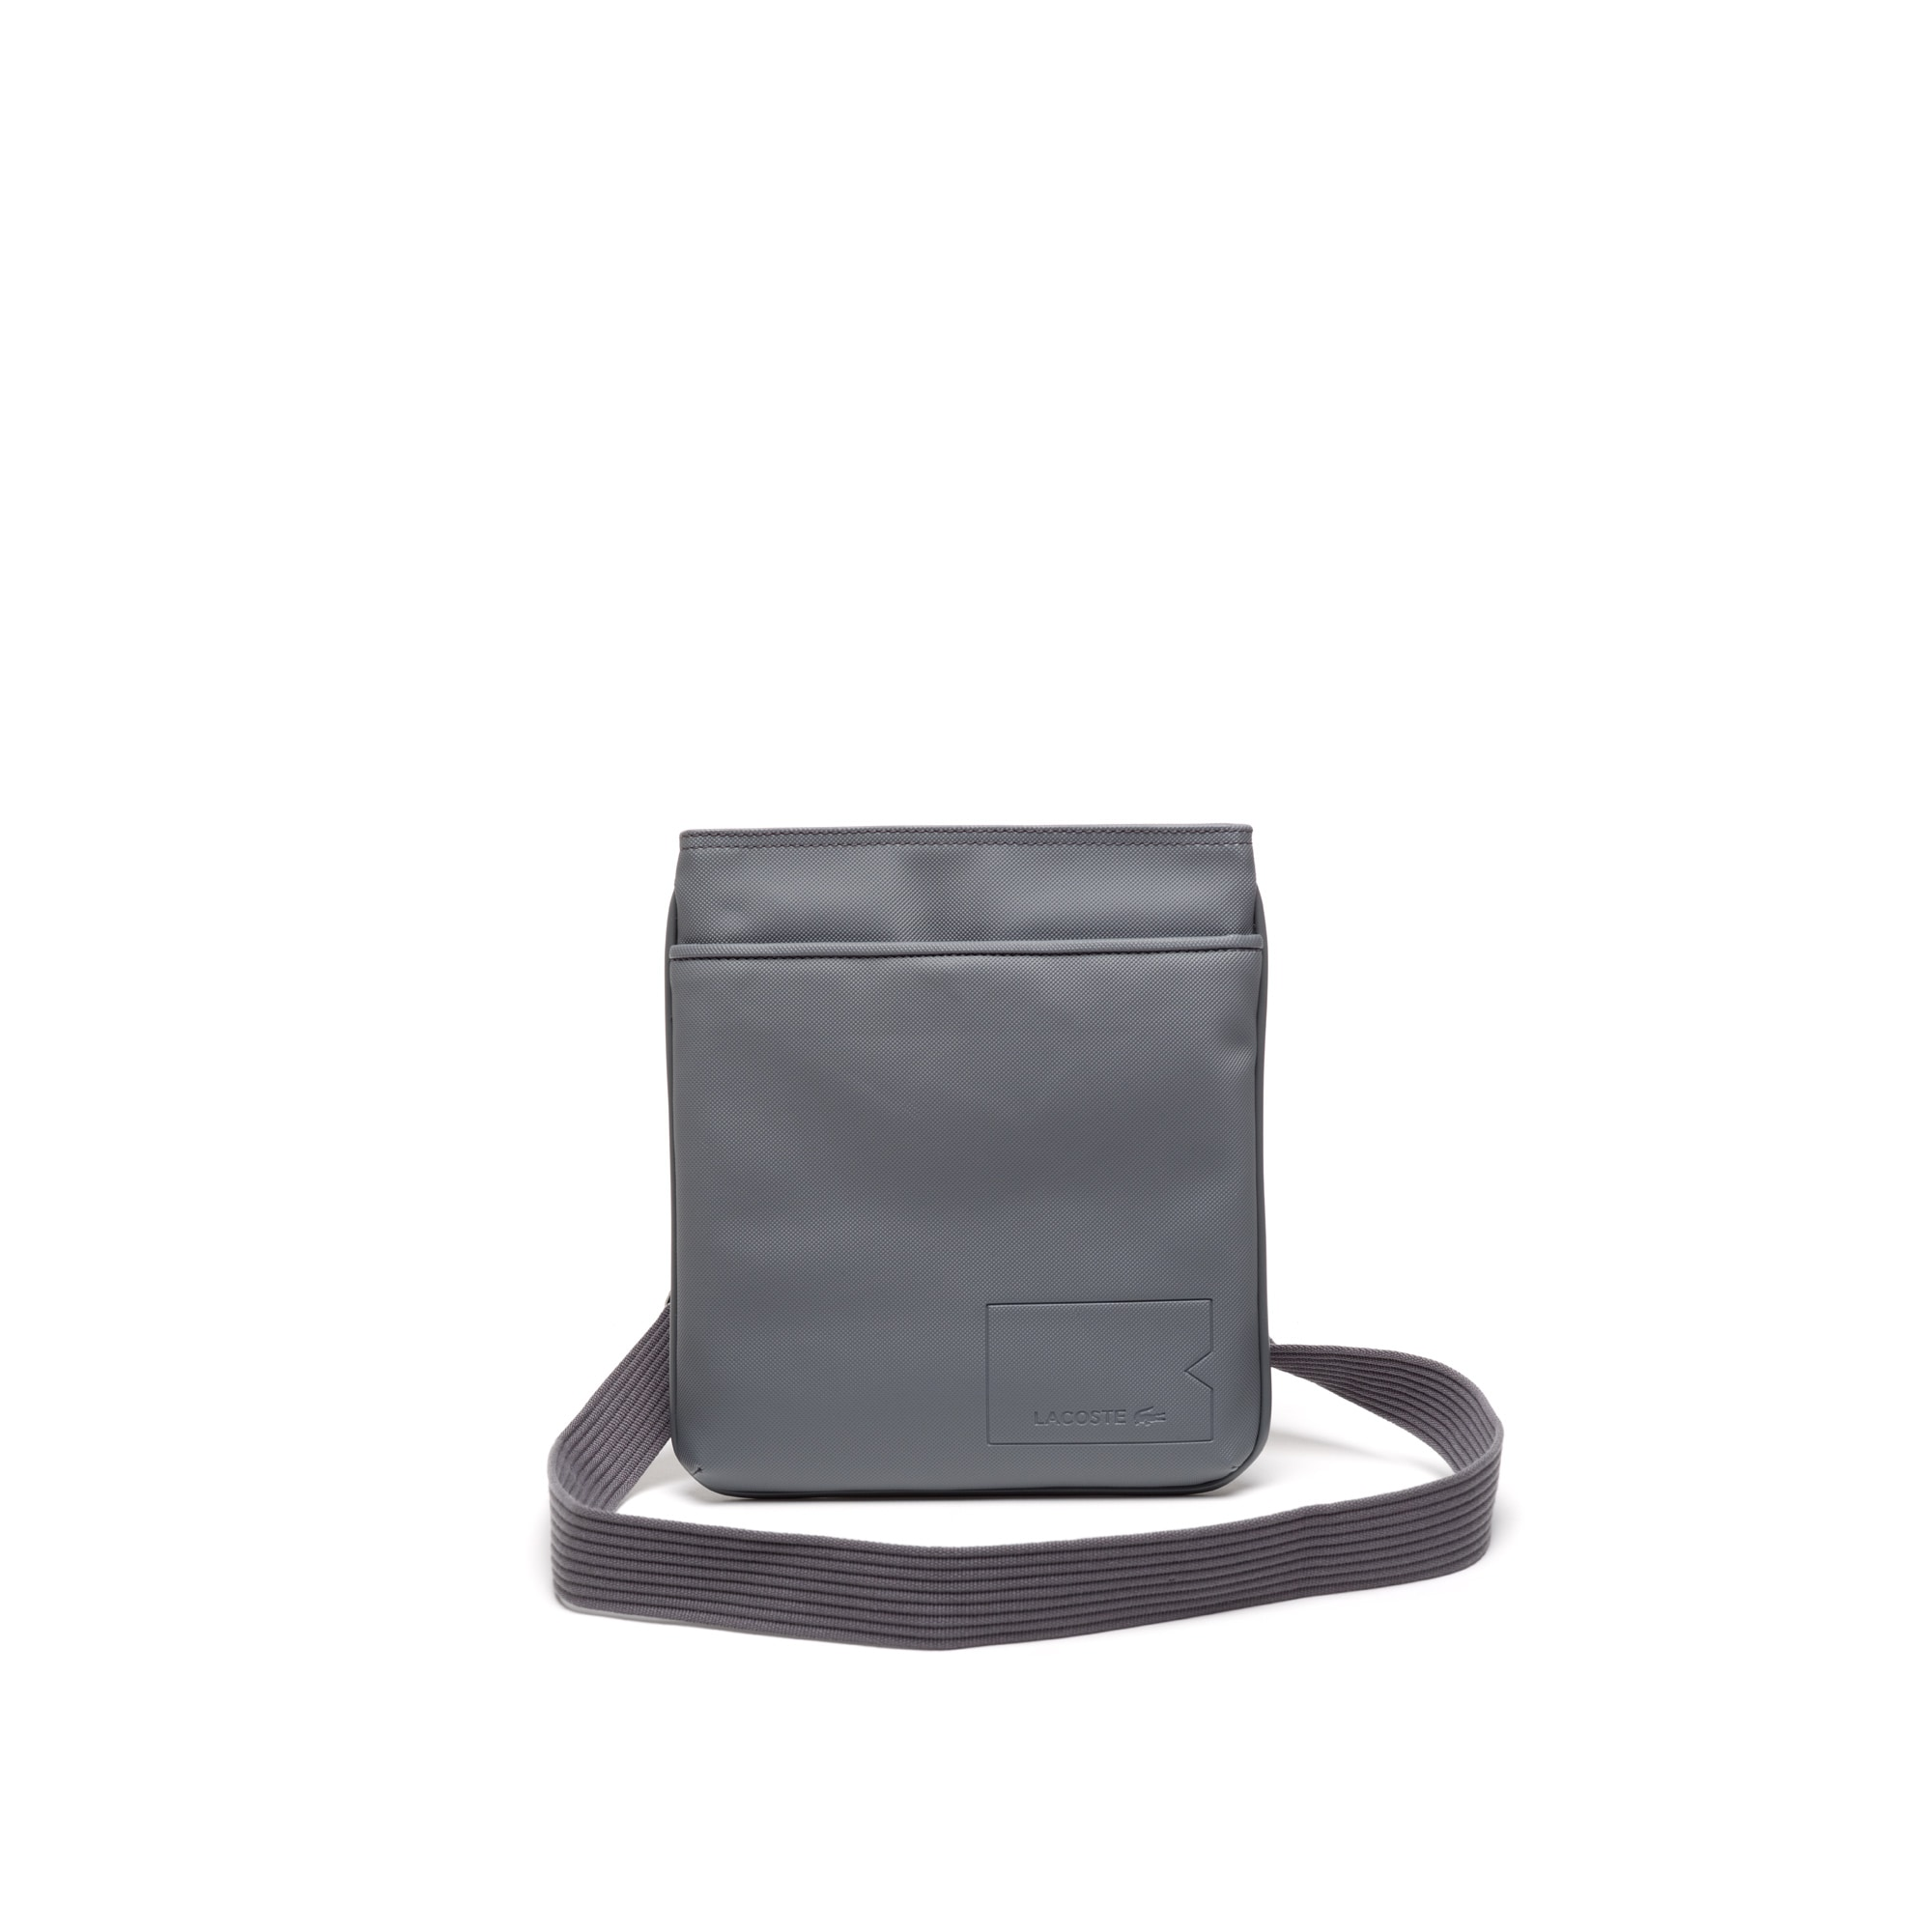 Men's classic large crossover bag